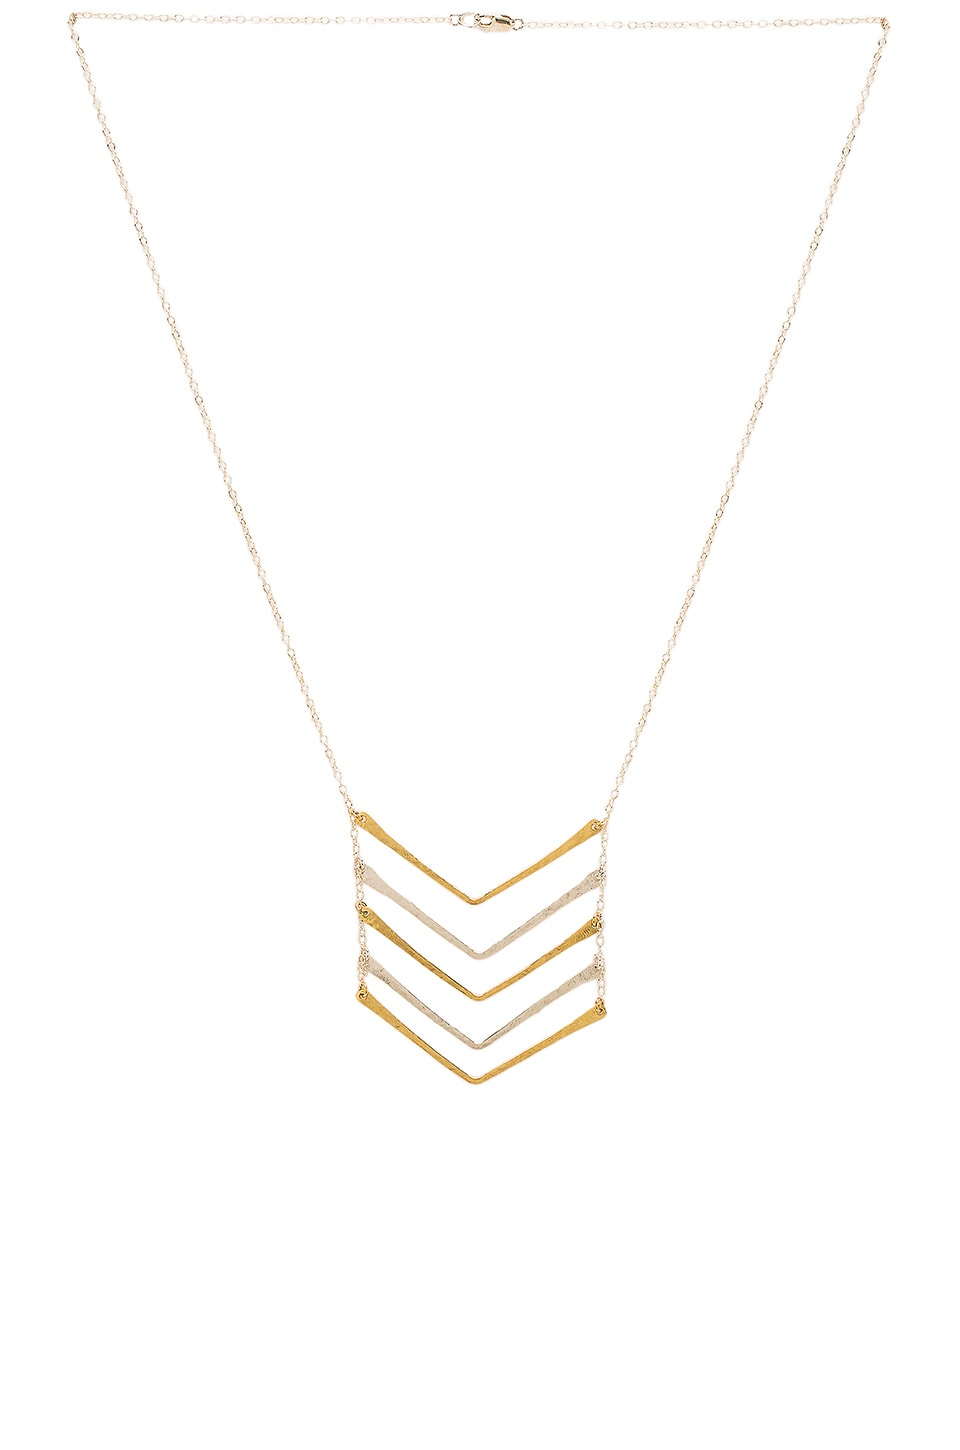 Mimi & Lu Chevron Five Bar Chevron Necklace in Silver & Gold